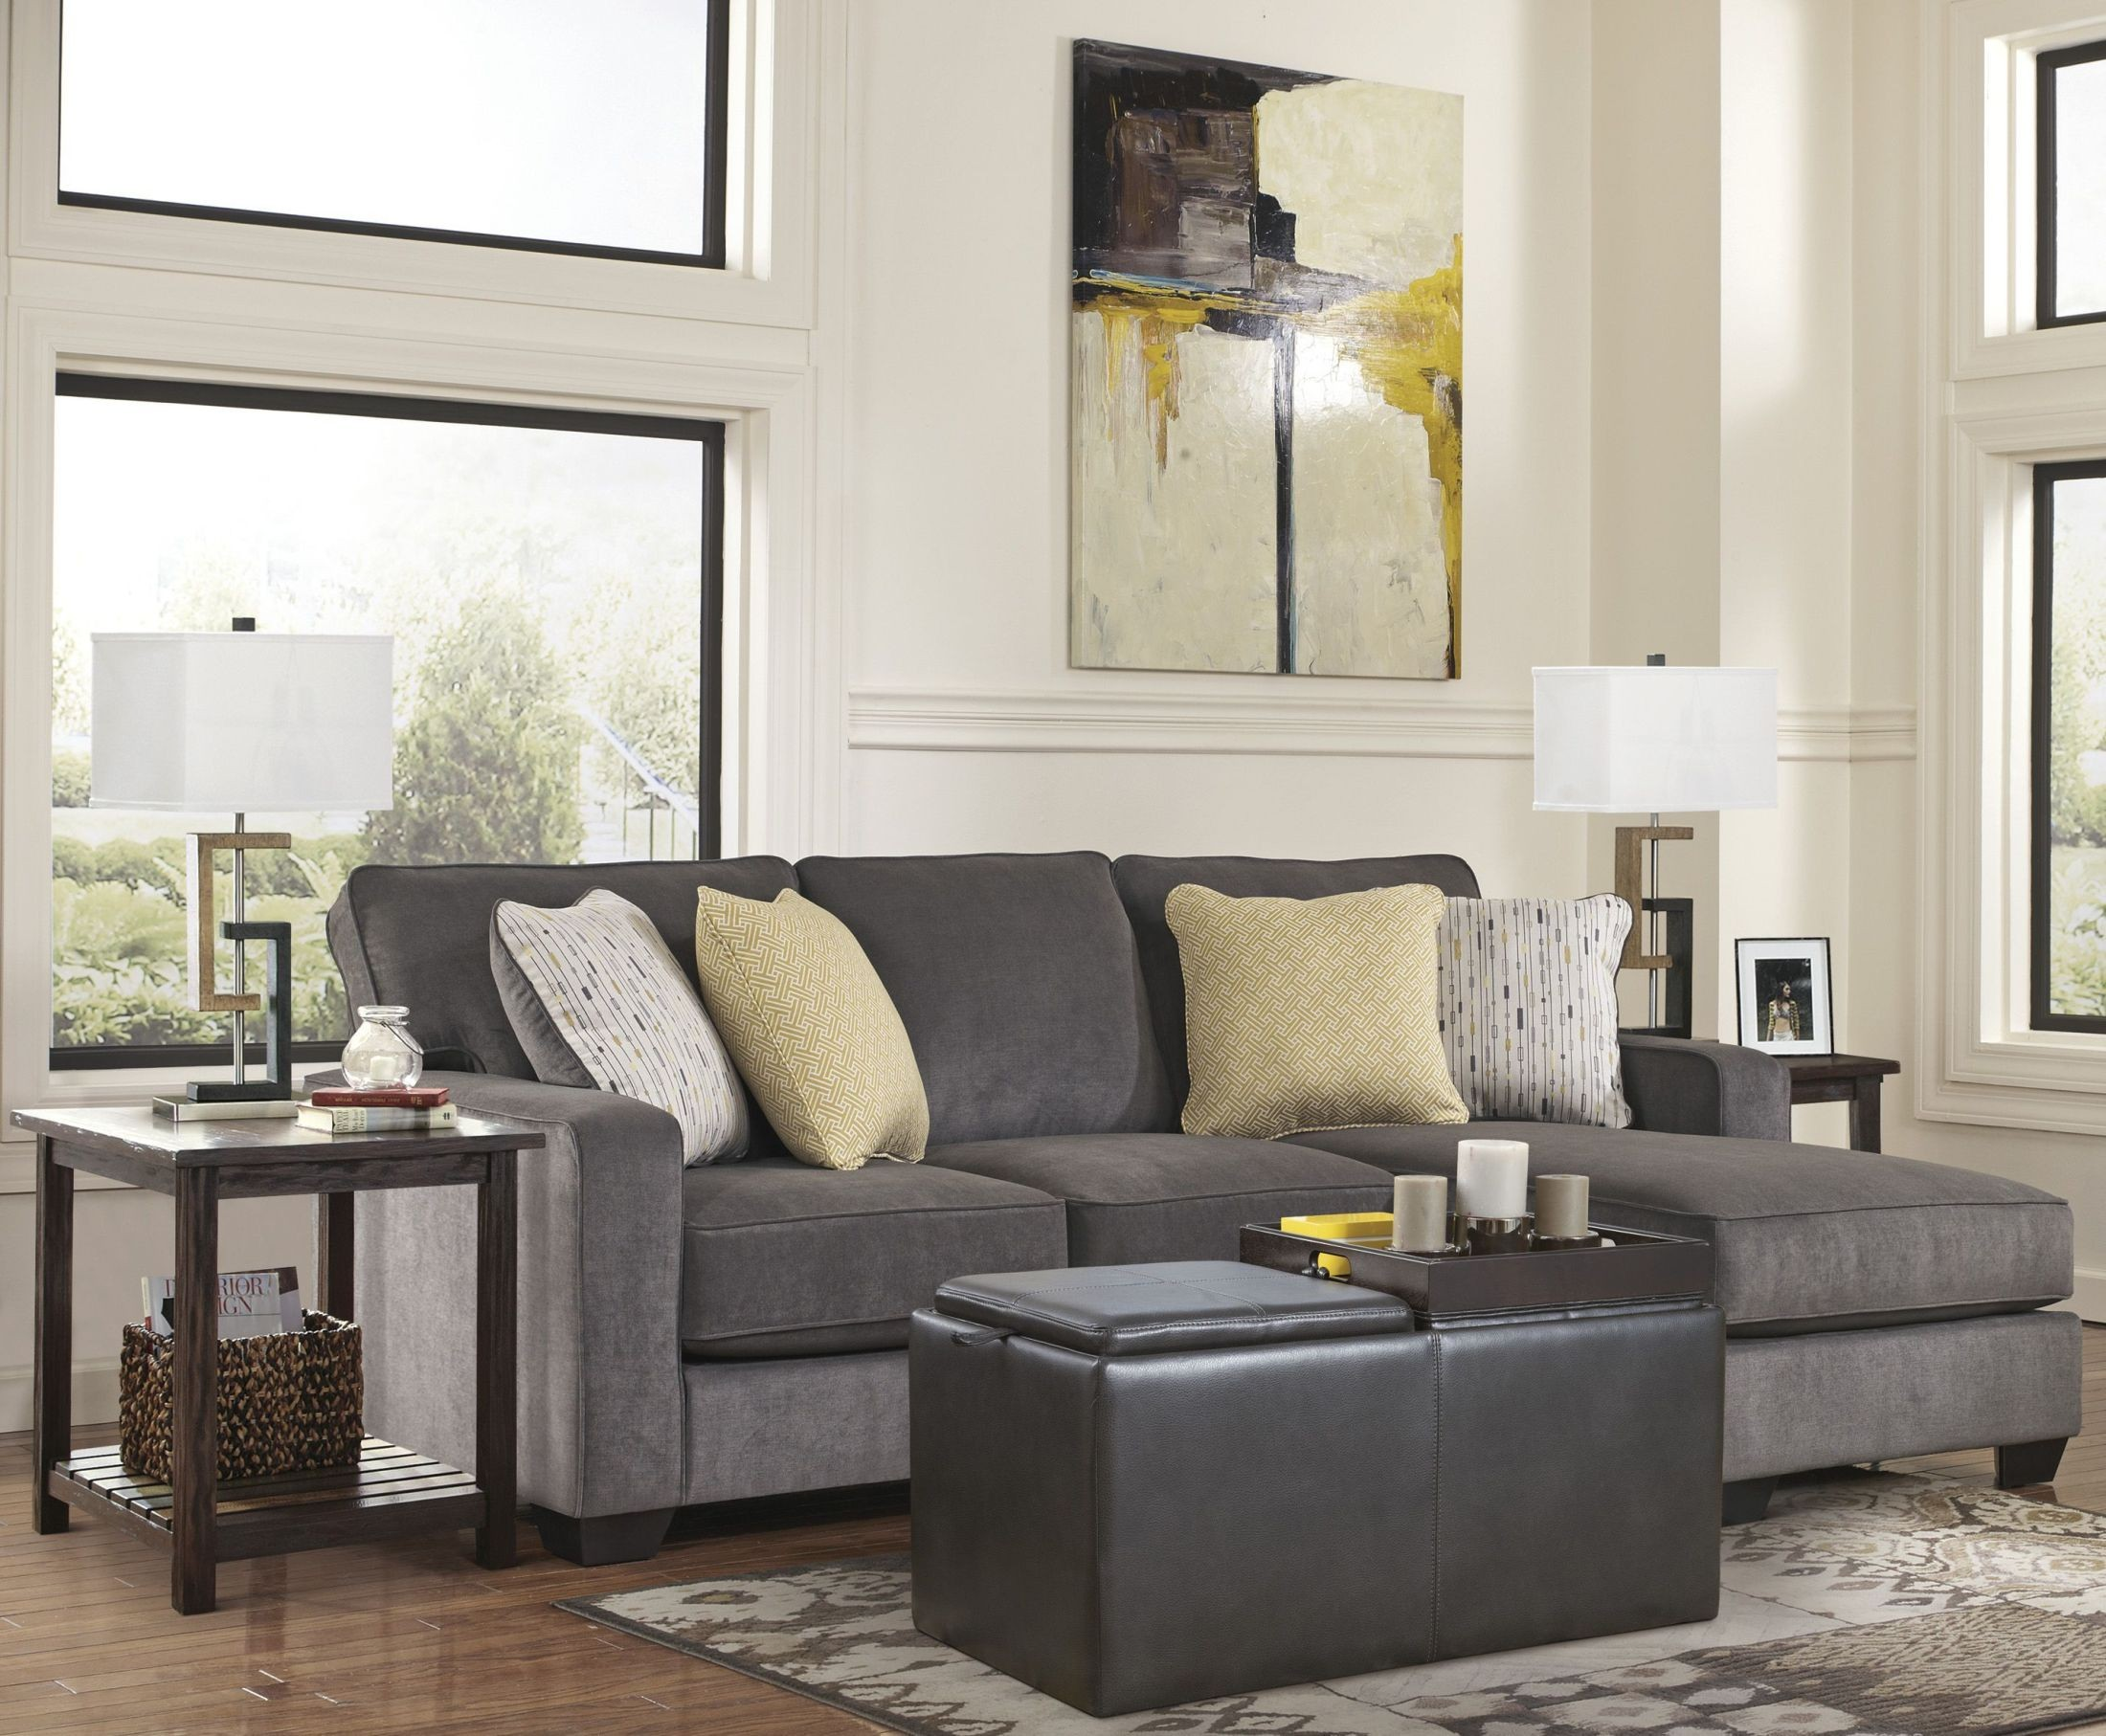 laryn cahodan living signature size reviewshodan center of sofas full marble fascinating chaisehodan ashley sofa design hodan reviewsniture khaki spacesashley spaces chaise picture by concept